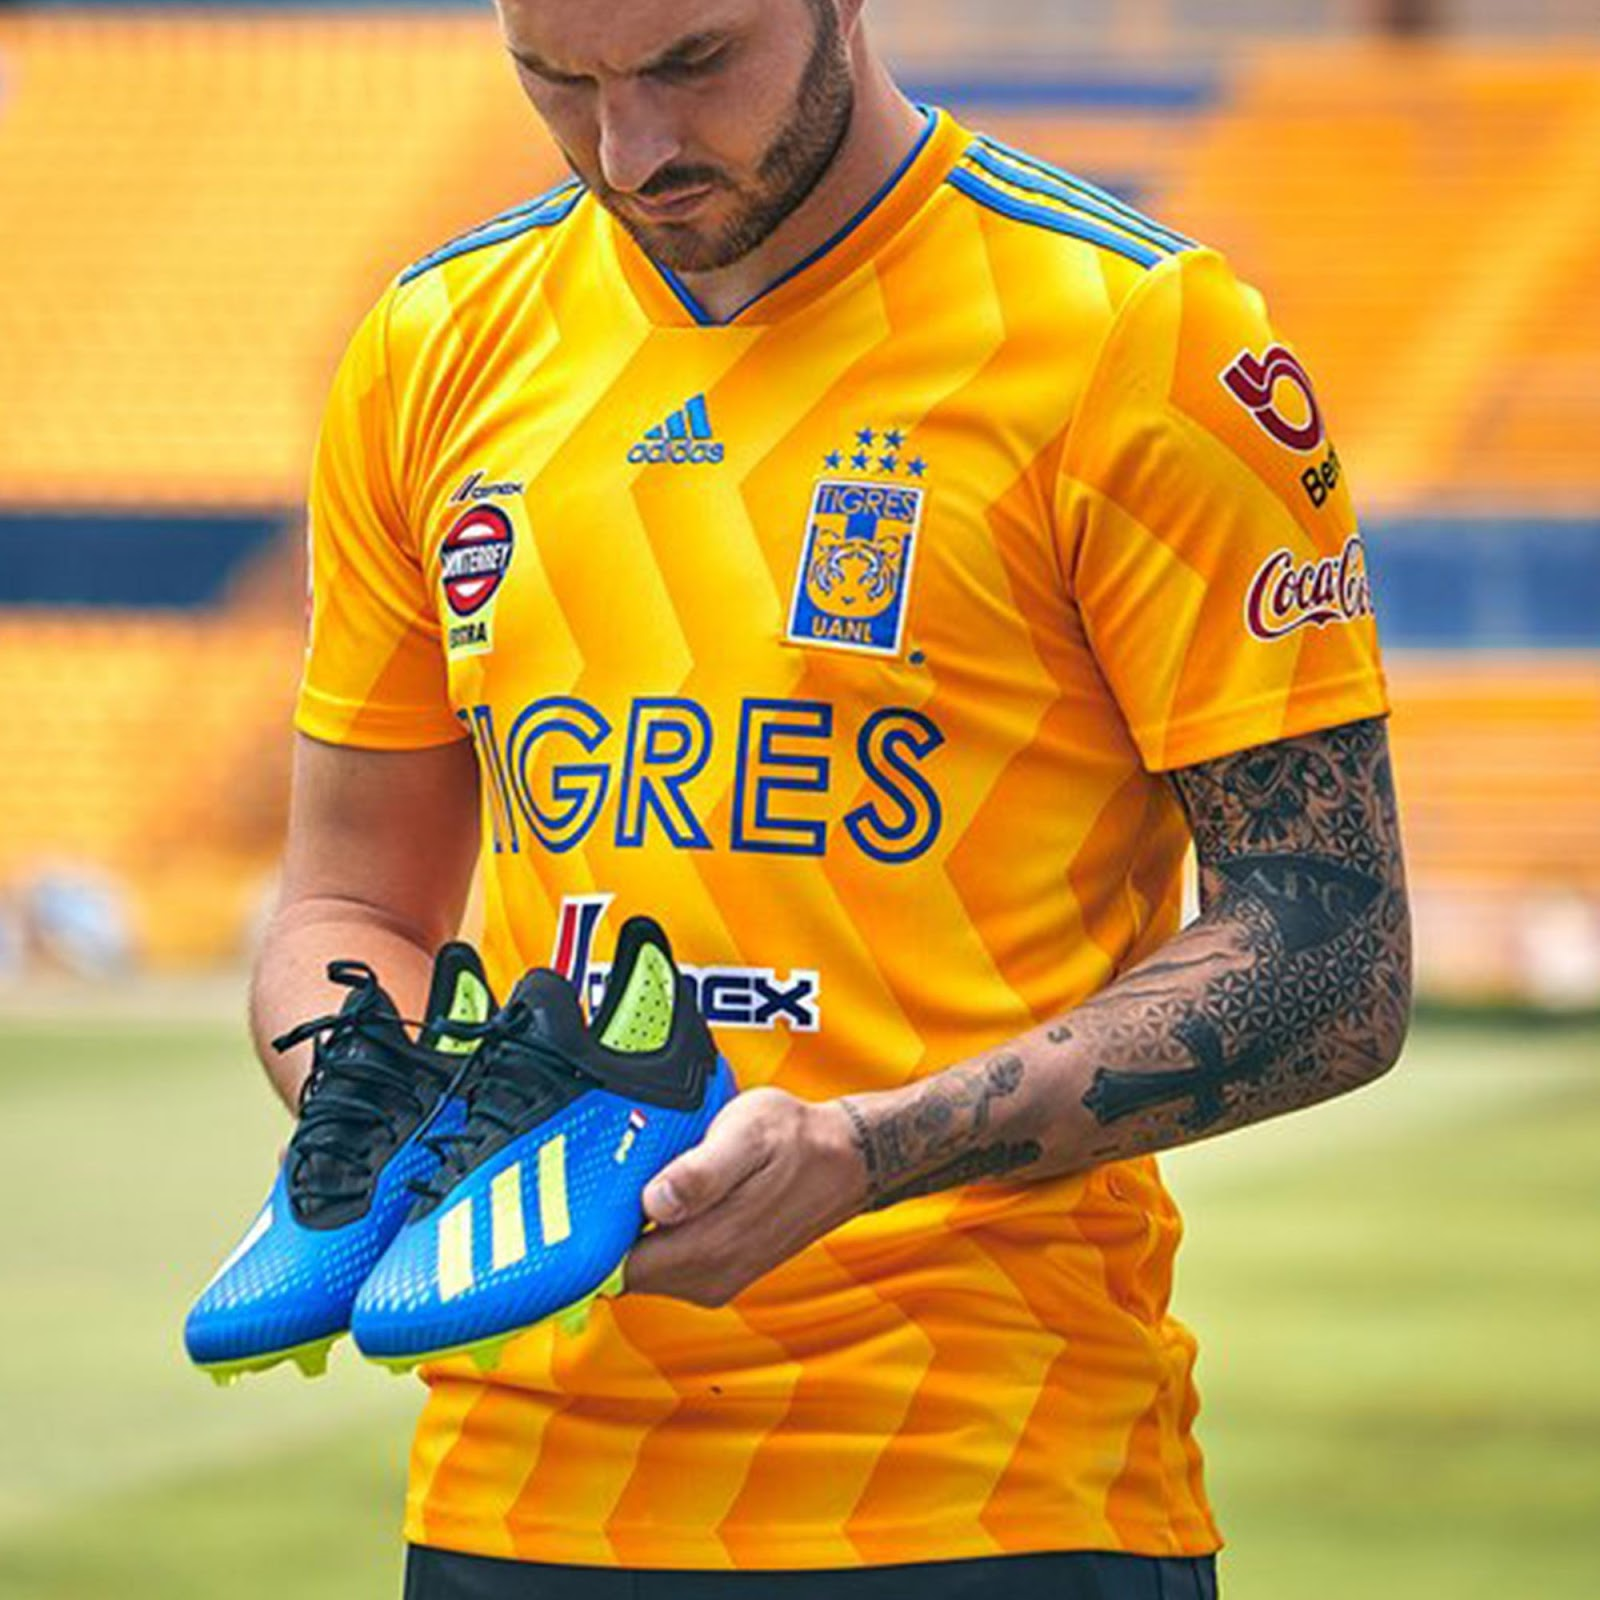 Tigres White Shorts Adidas Tigres 18 19 Home Away Kits Released